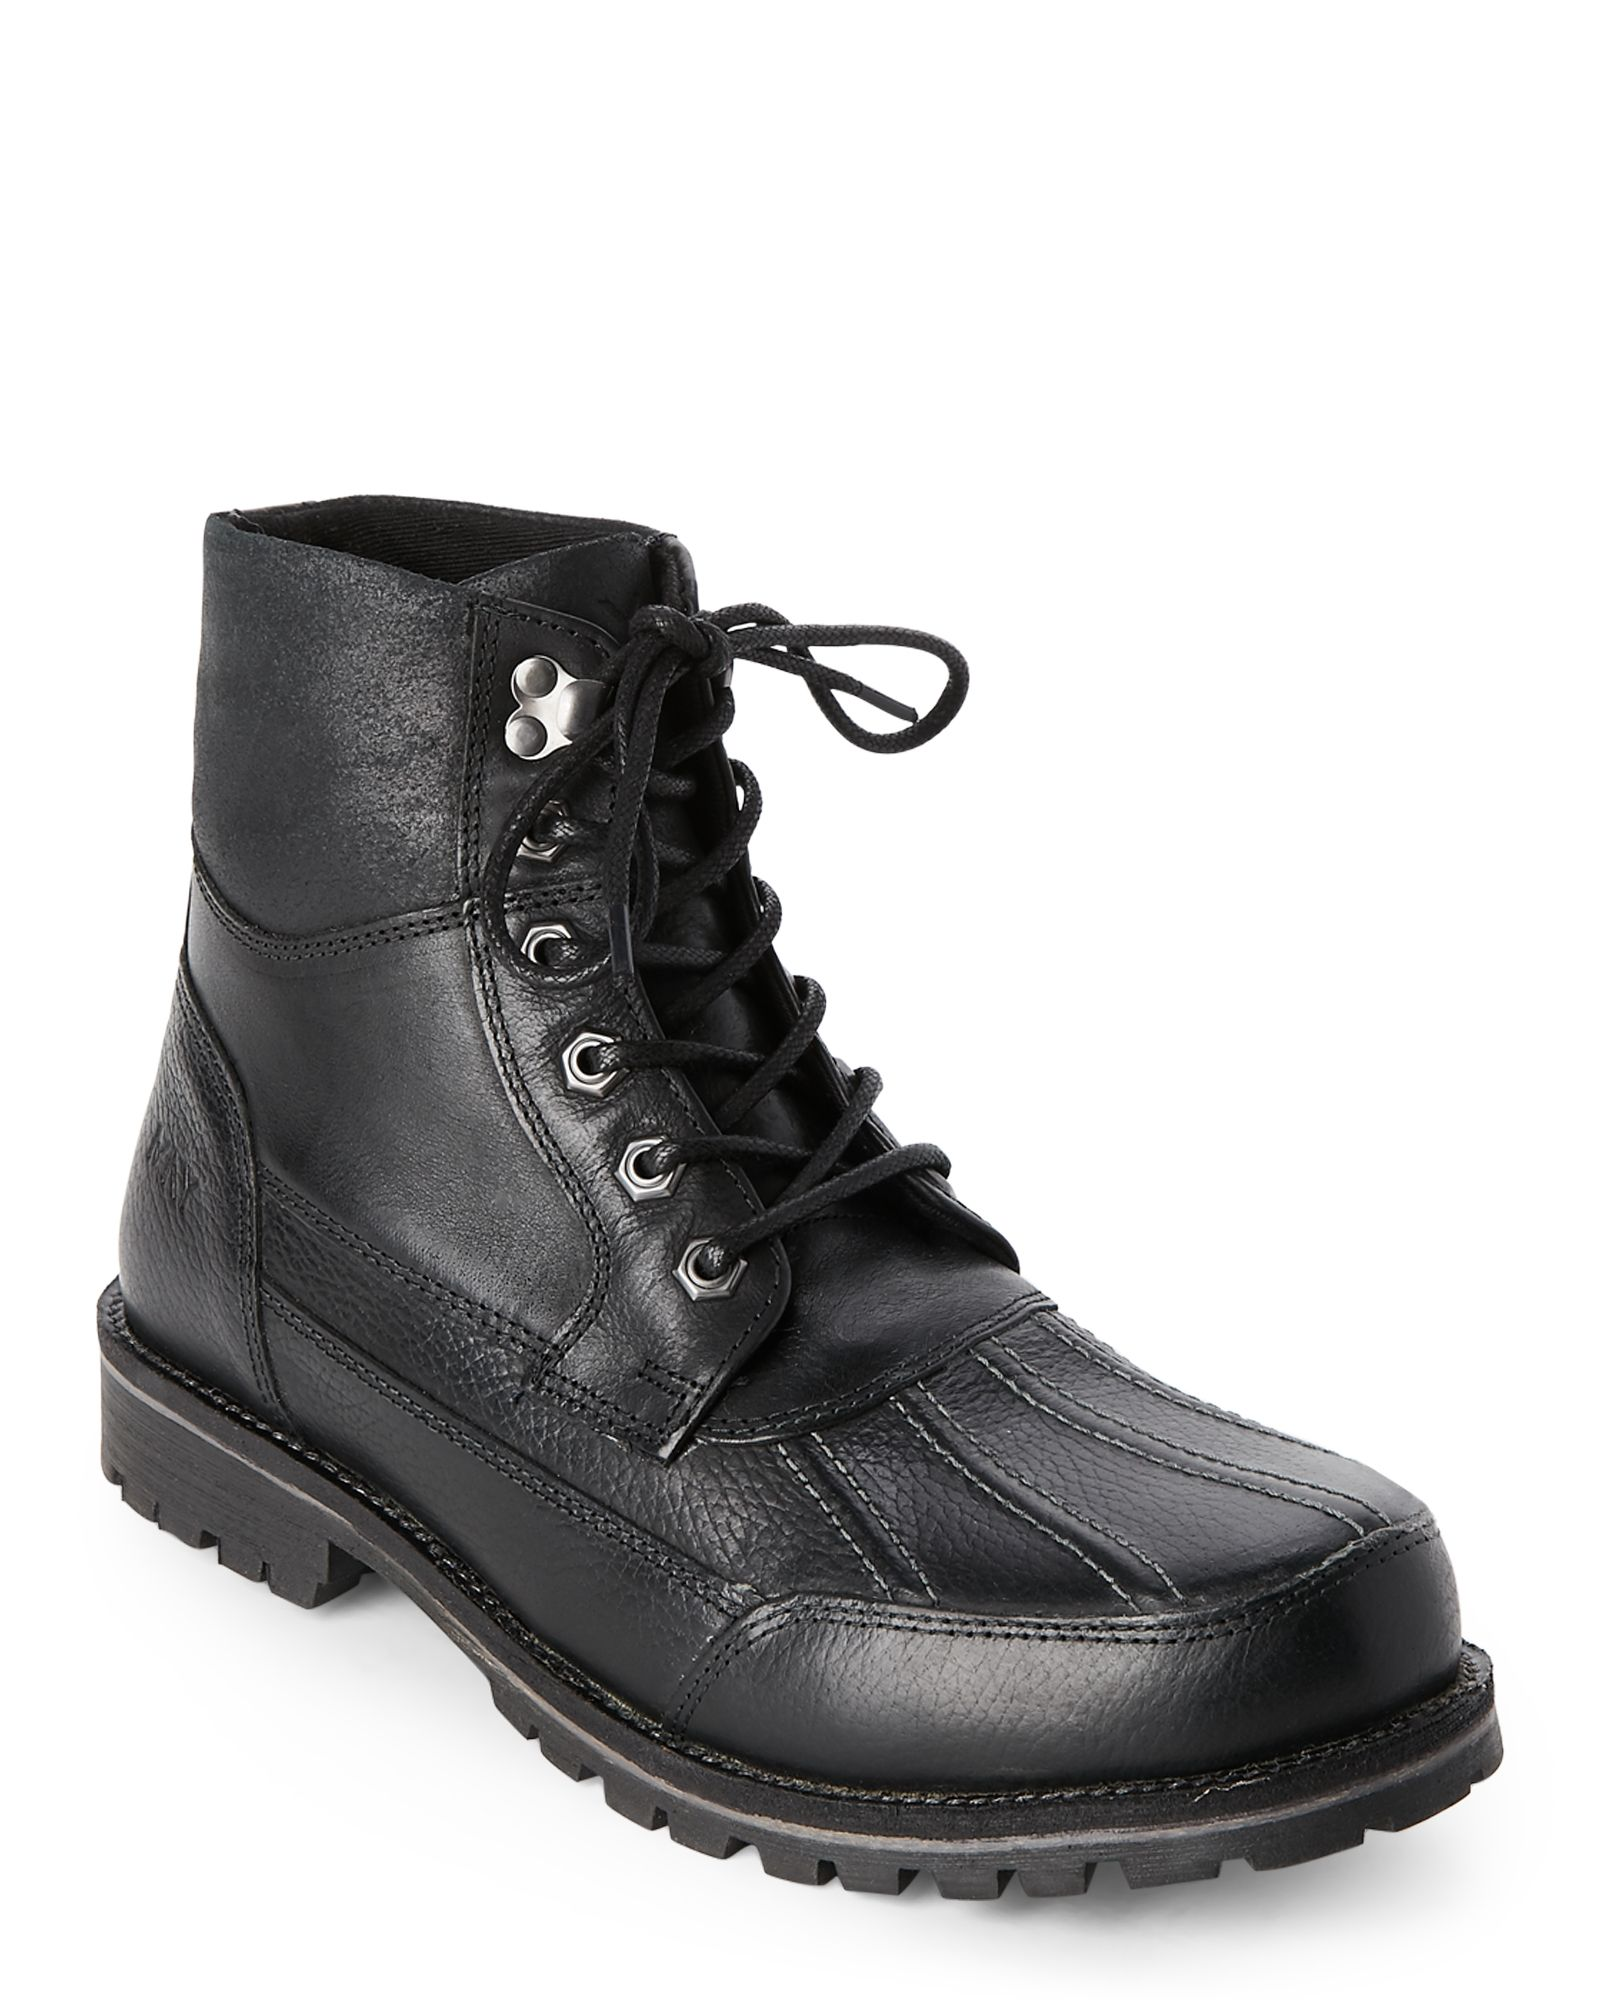 45835403f74 Black Otis Lace-Up Boots | *Apparel & Accessories* | Boots, Lace up ...